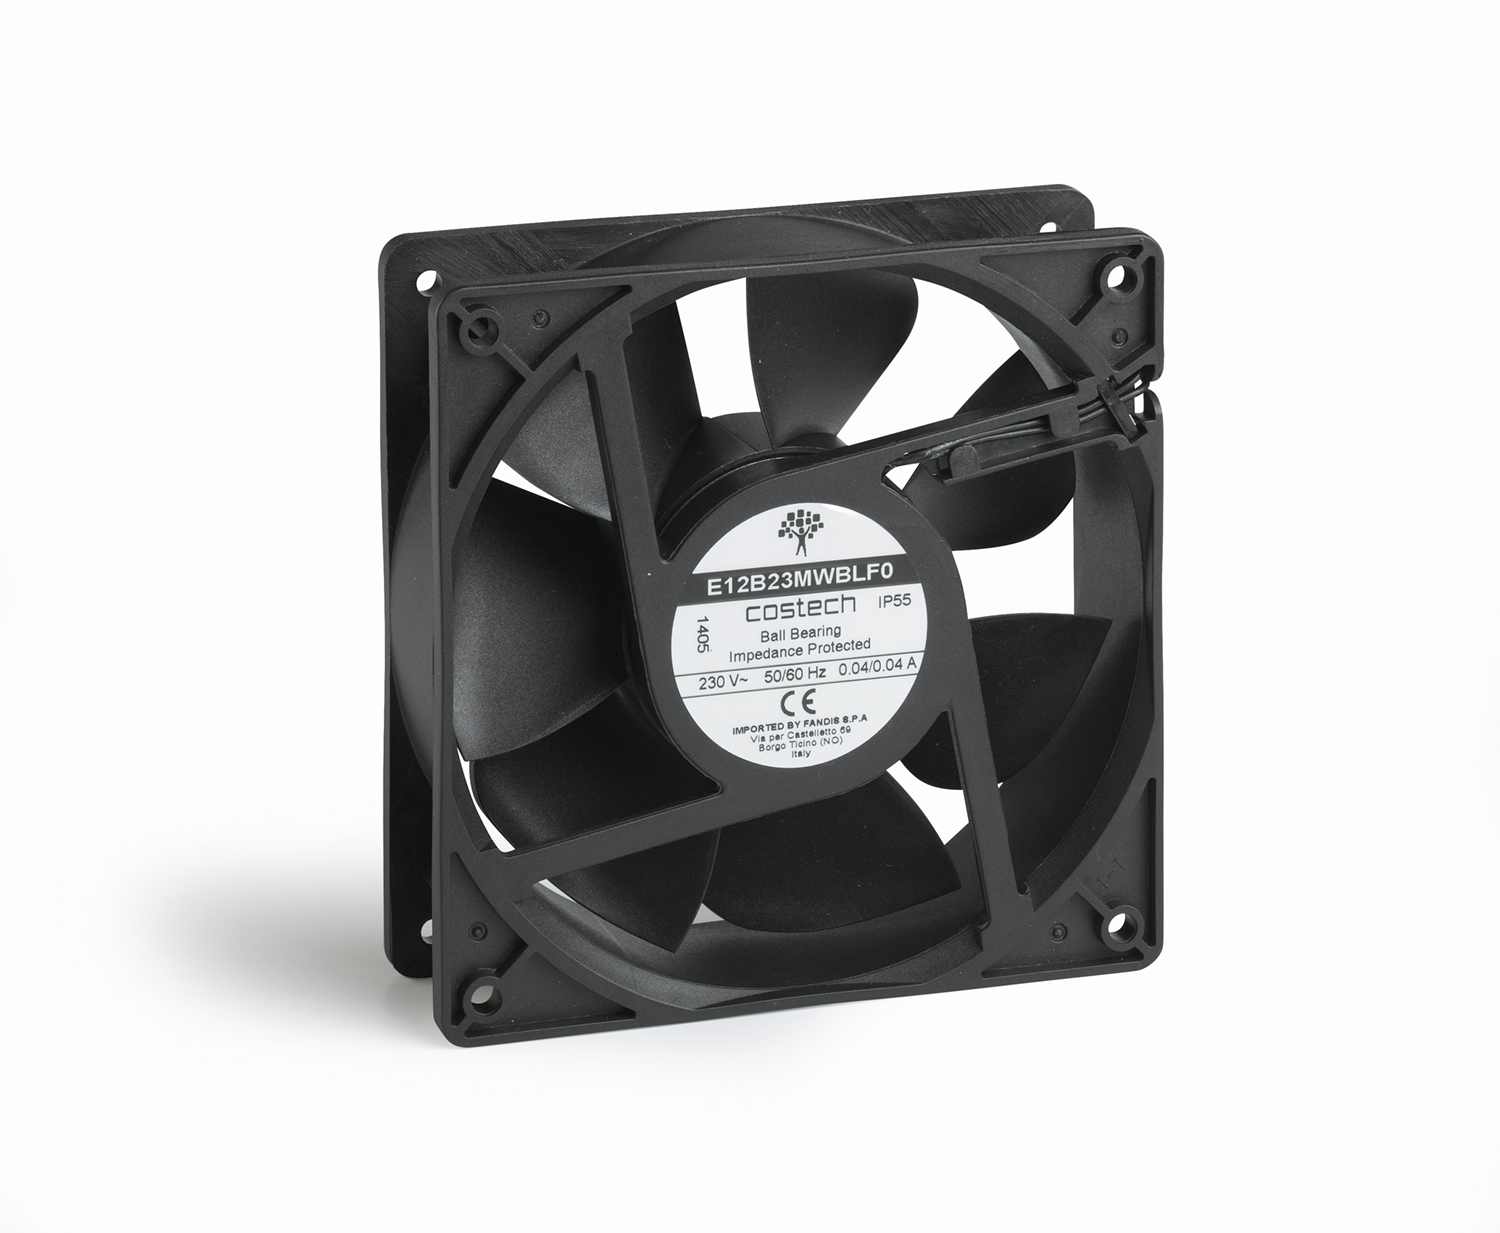 Electronic Cooling Fans : Frame fans cooling electronic devices in cabinets